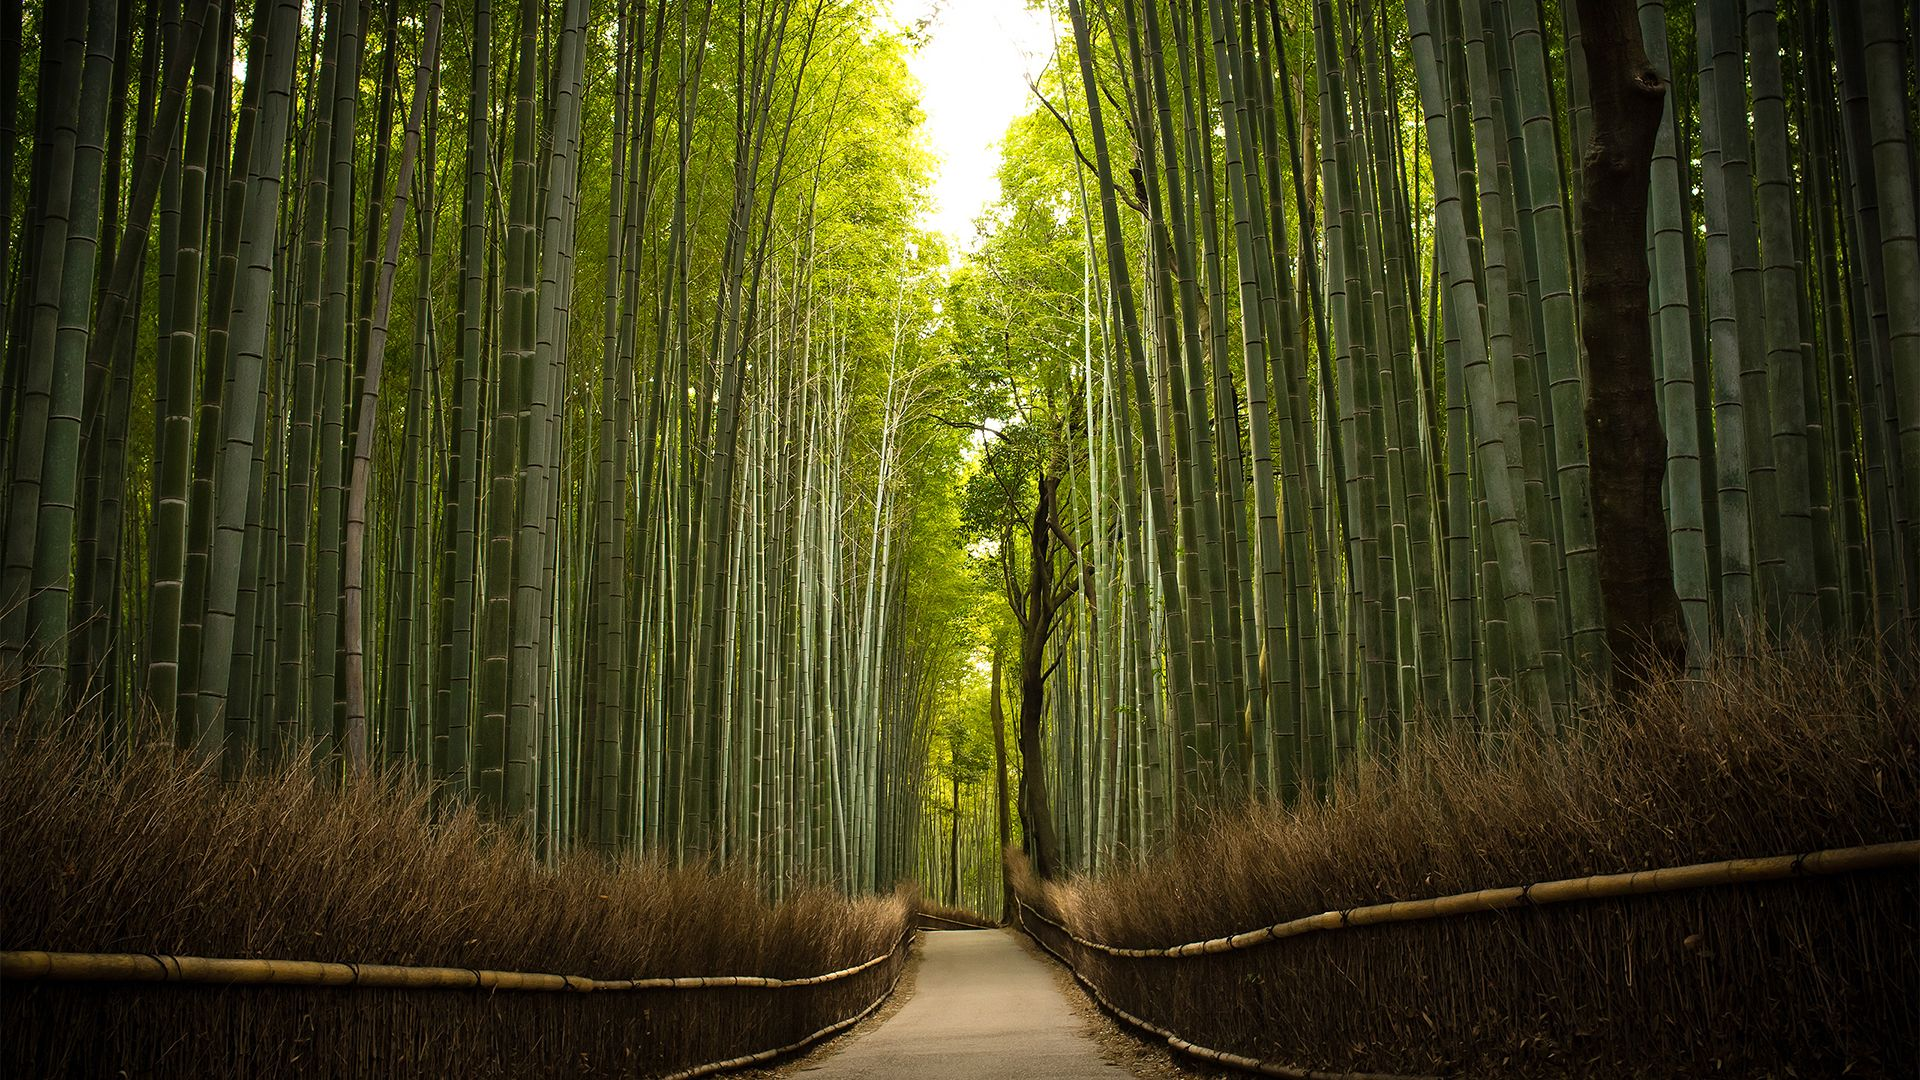 Hd Bamboo Wallpapers Top Free Hd Bamboo Backgrounds Wallpaperaccess